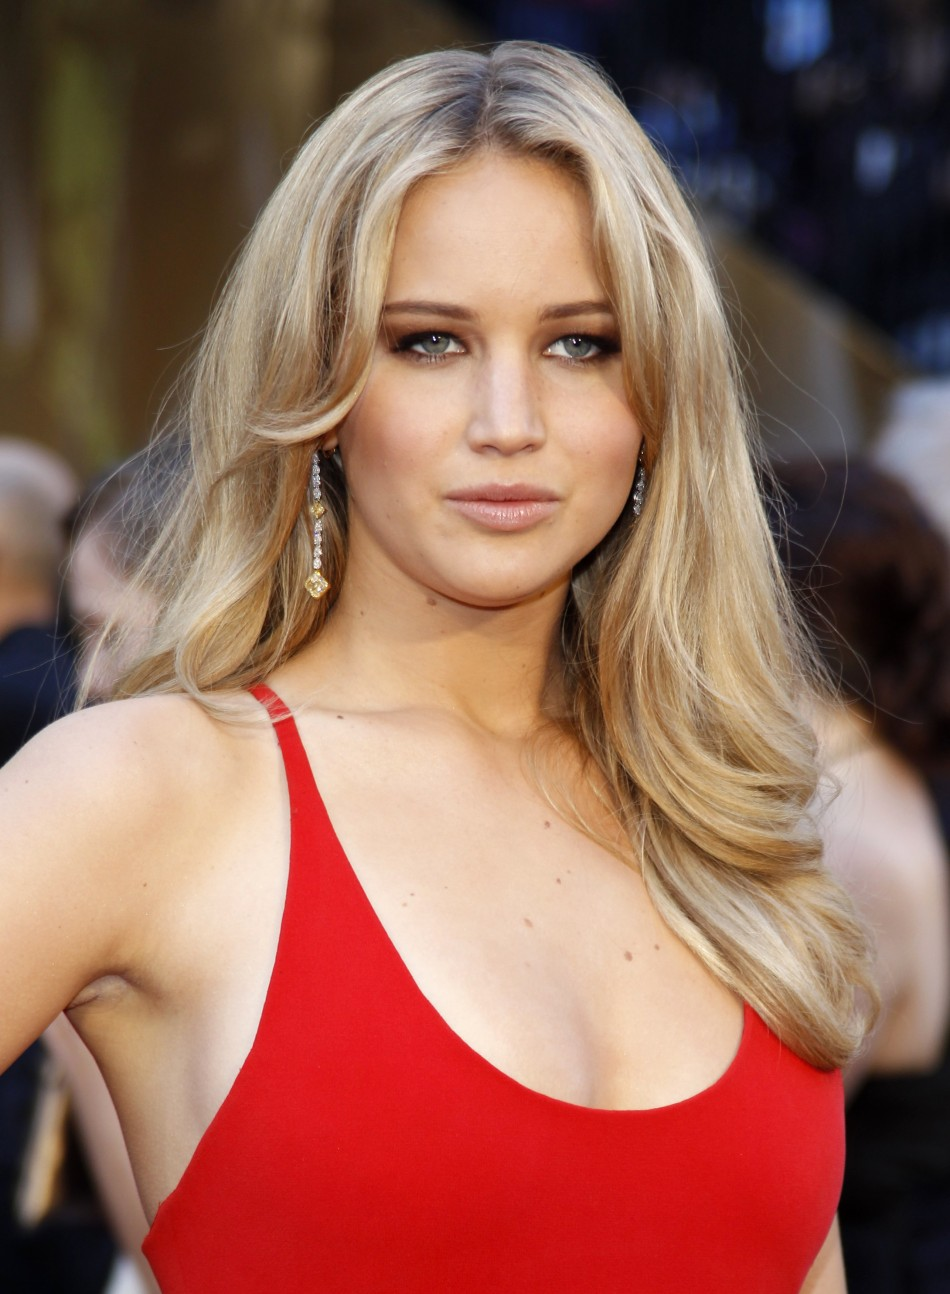 Leaked Jennifer Lawrence Photos Inspire New 4Chan Take ...